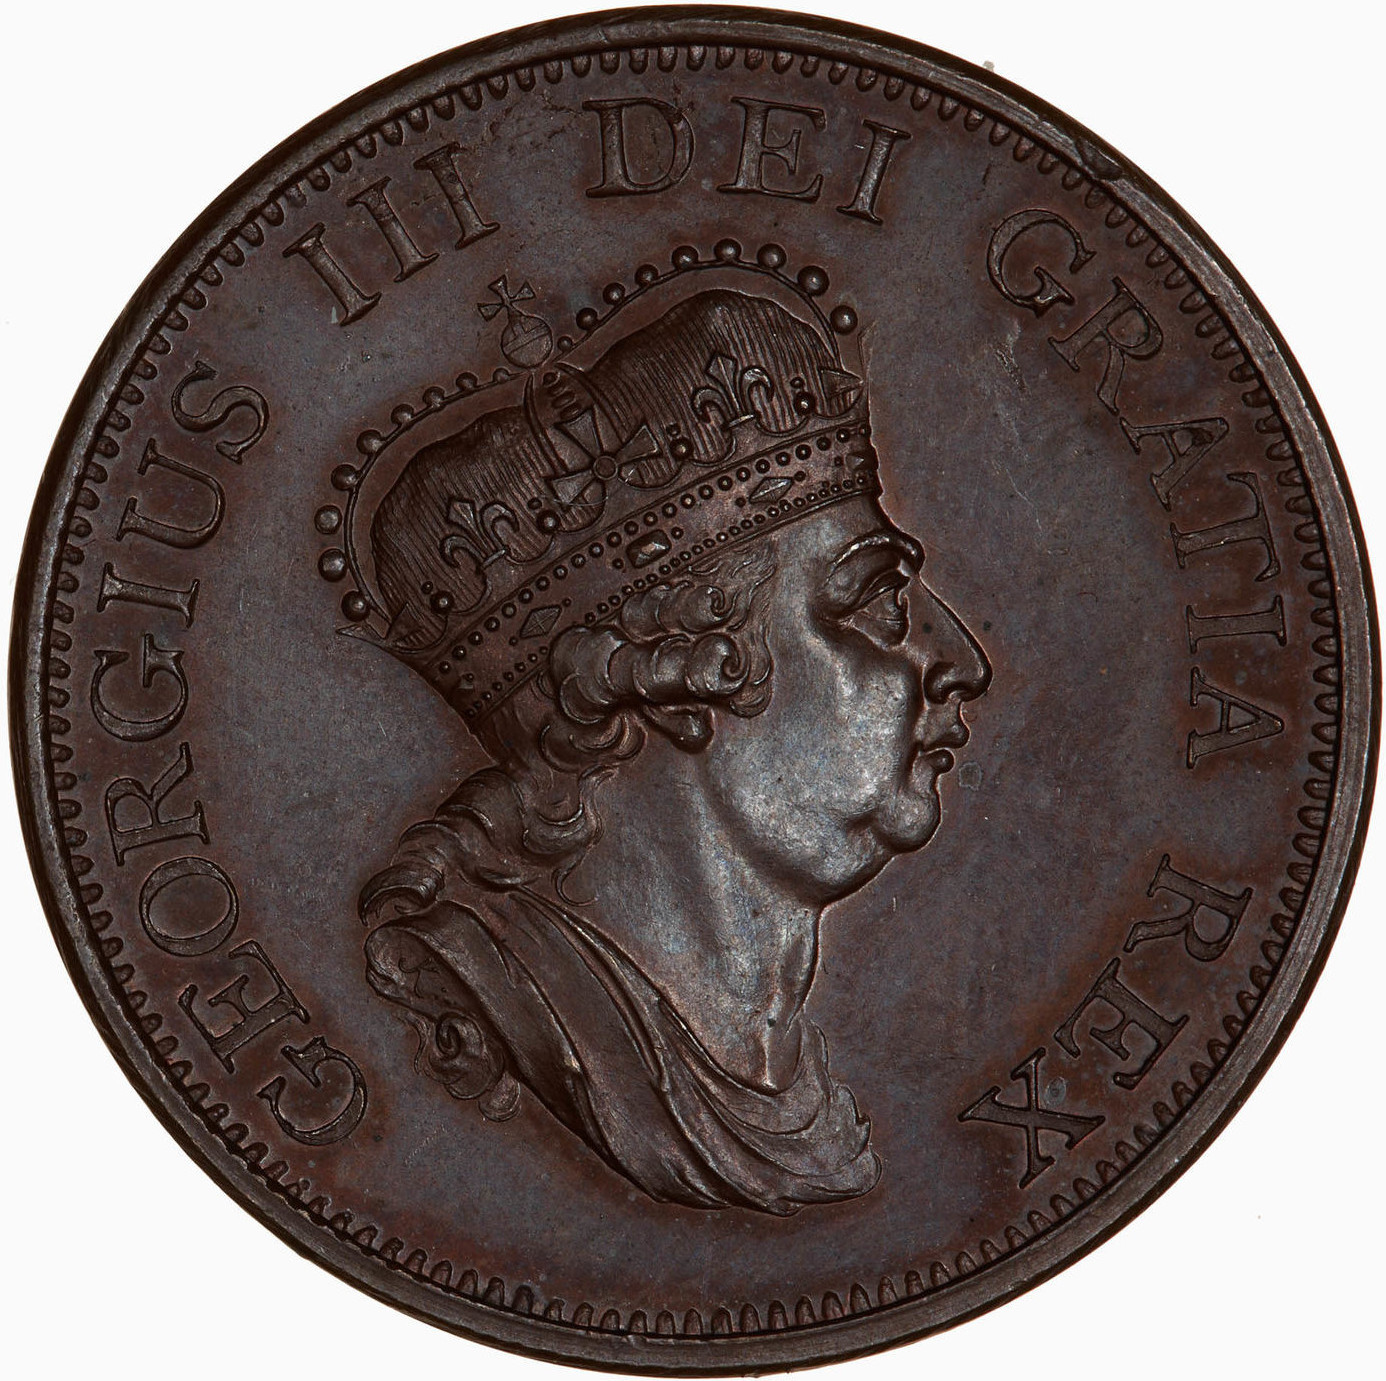 Halfpenny (Pattern): Photo Pattern Coin - Halfpenny, George III, Great Britain, 1799